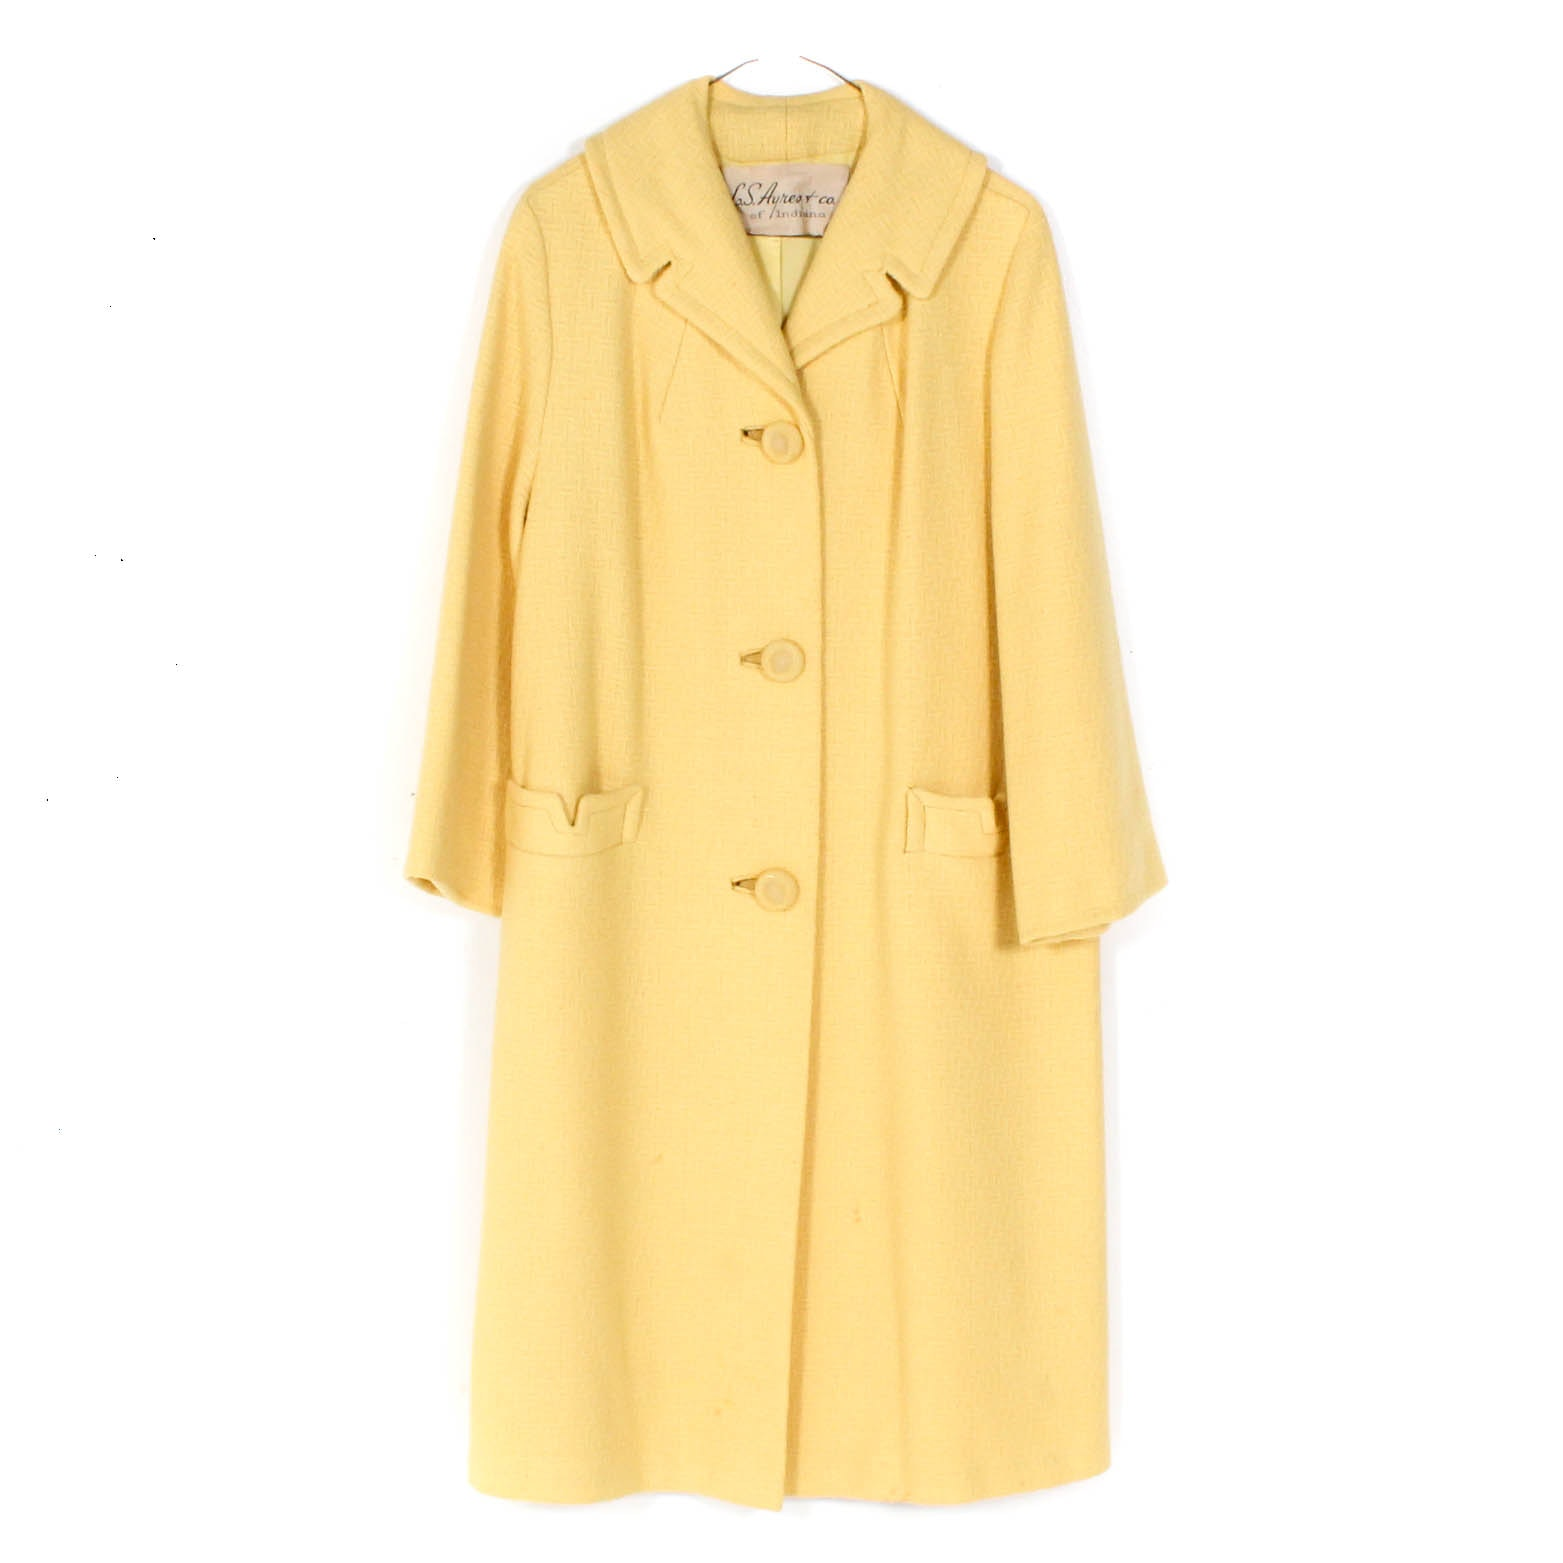 Vintage Yellow Overcoat from L. S. Ayres & Company